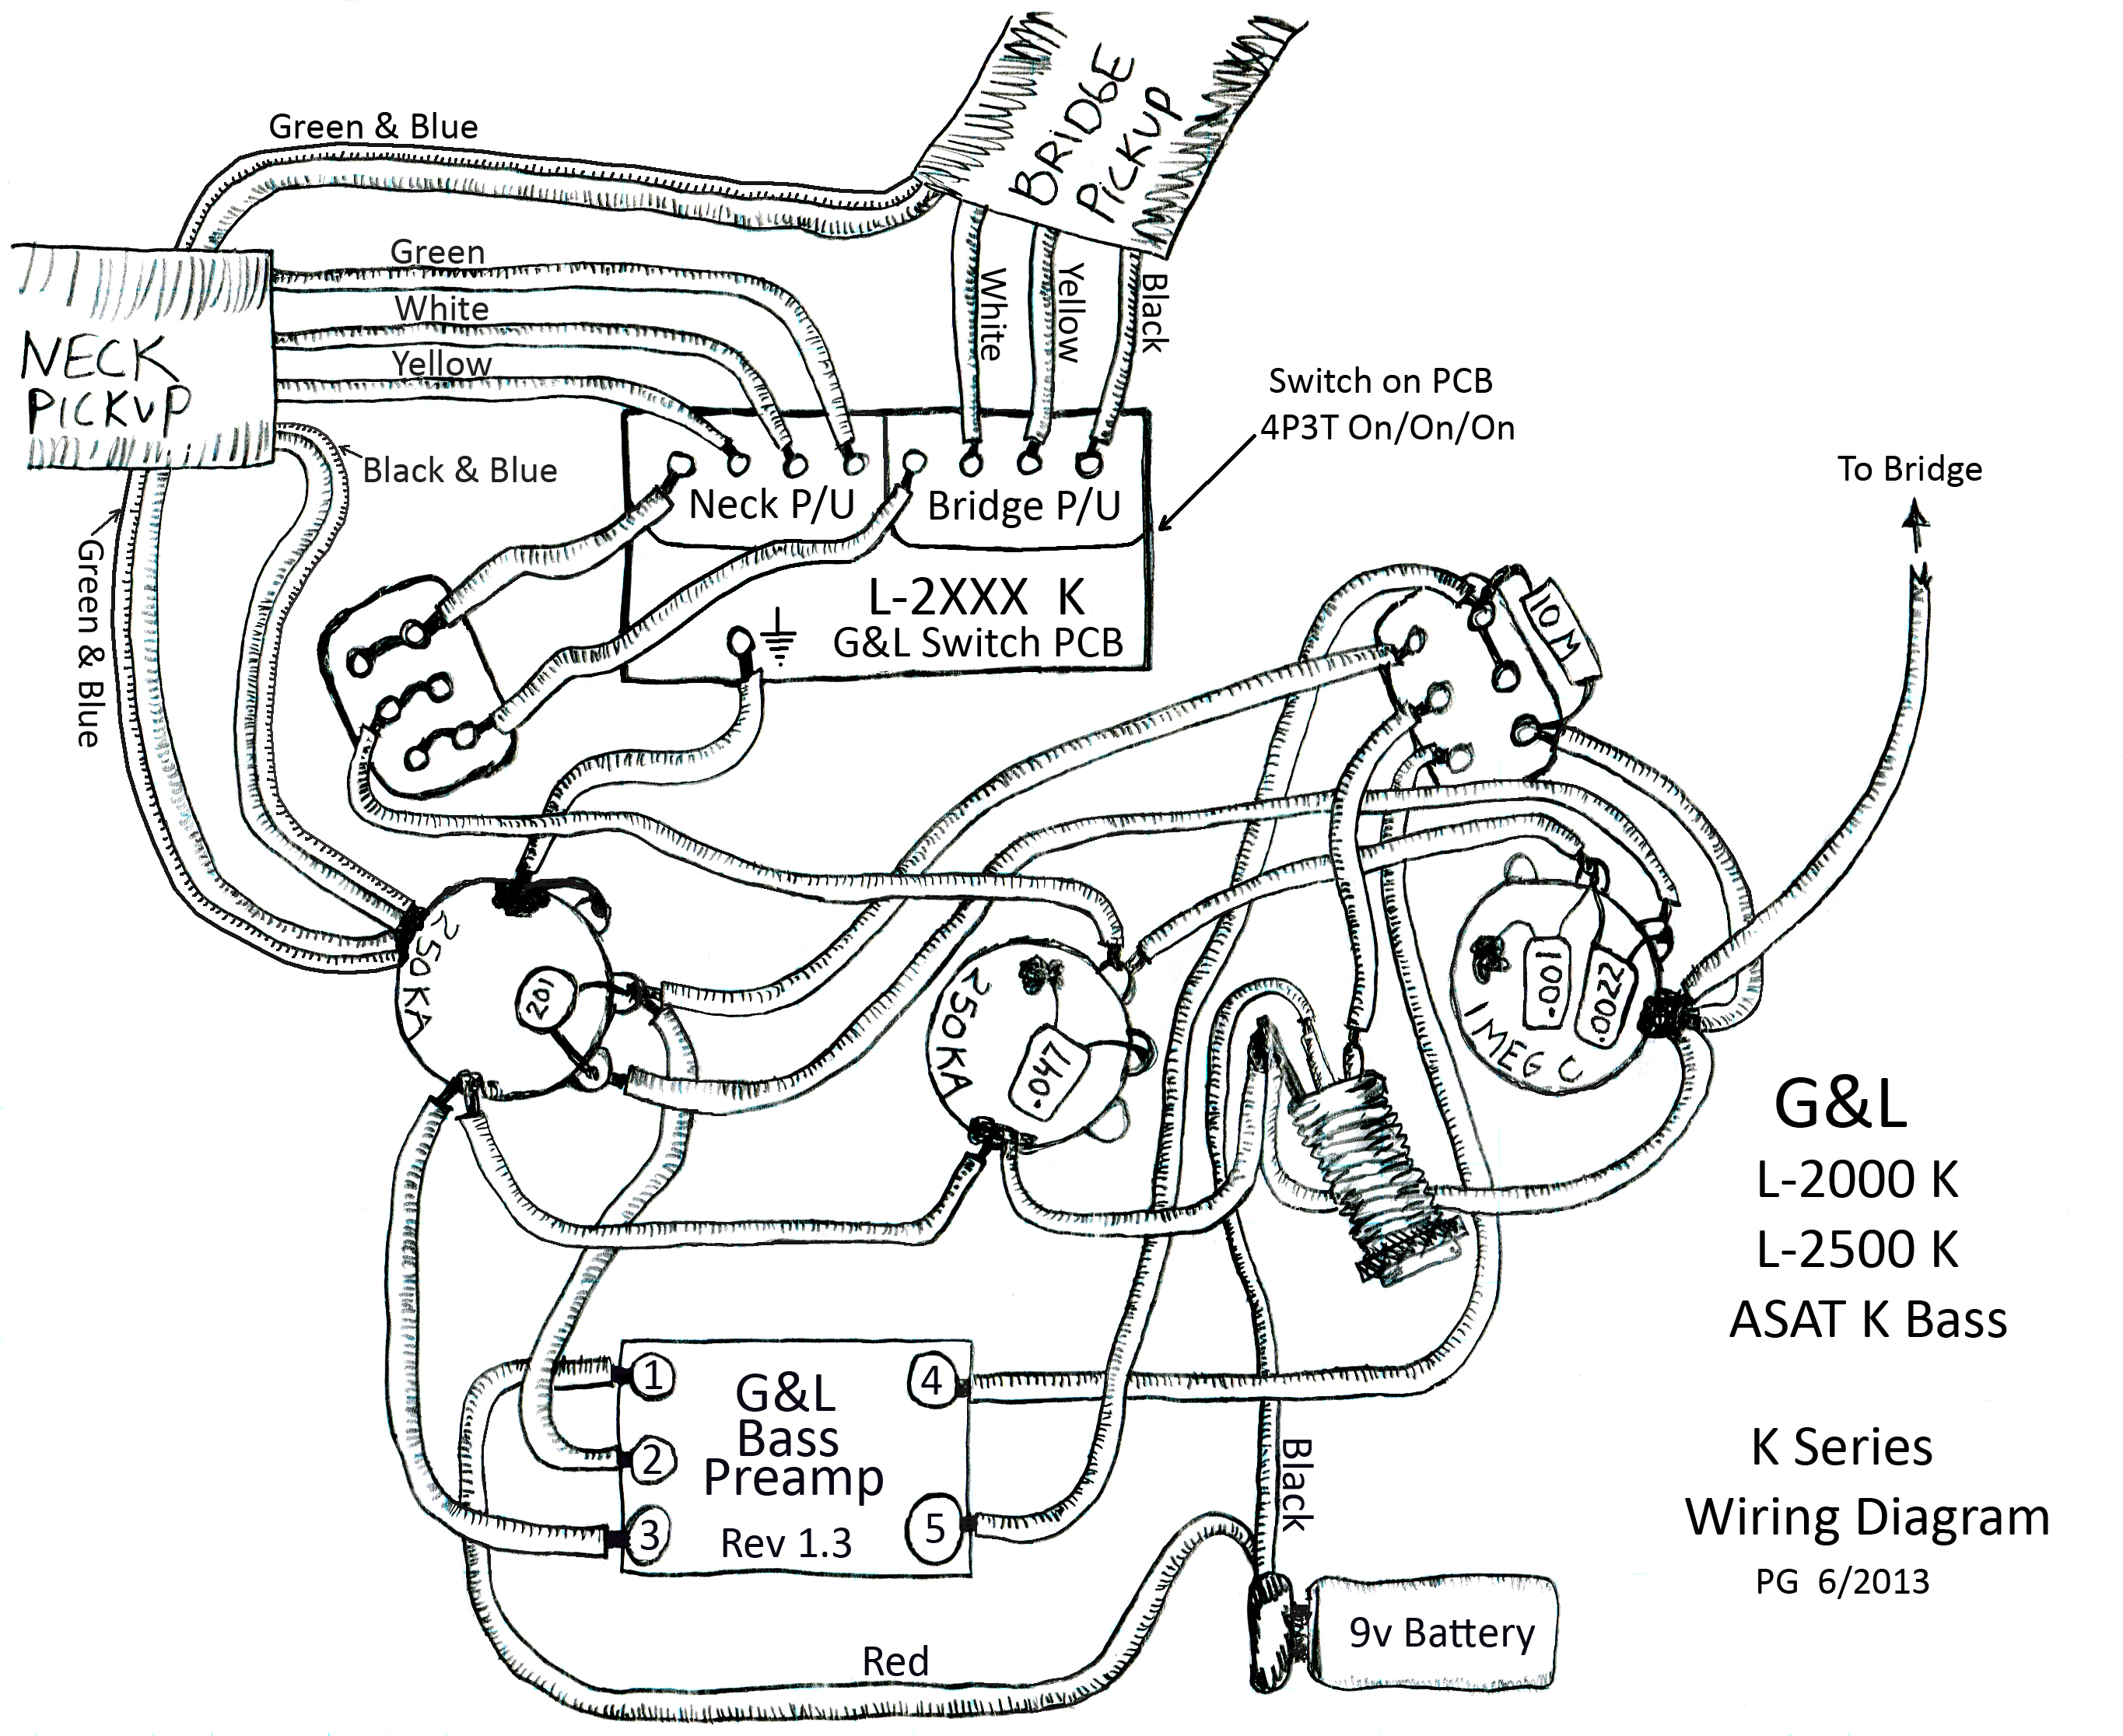 A Carrier Heat Pump Wiring Diagram For The Wiring Diagram